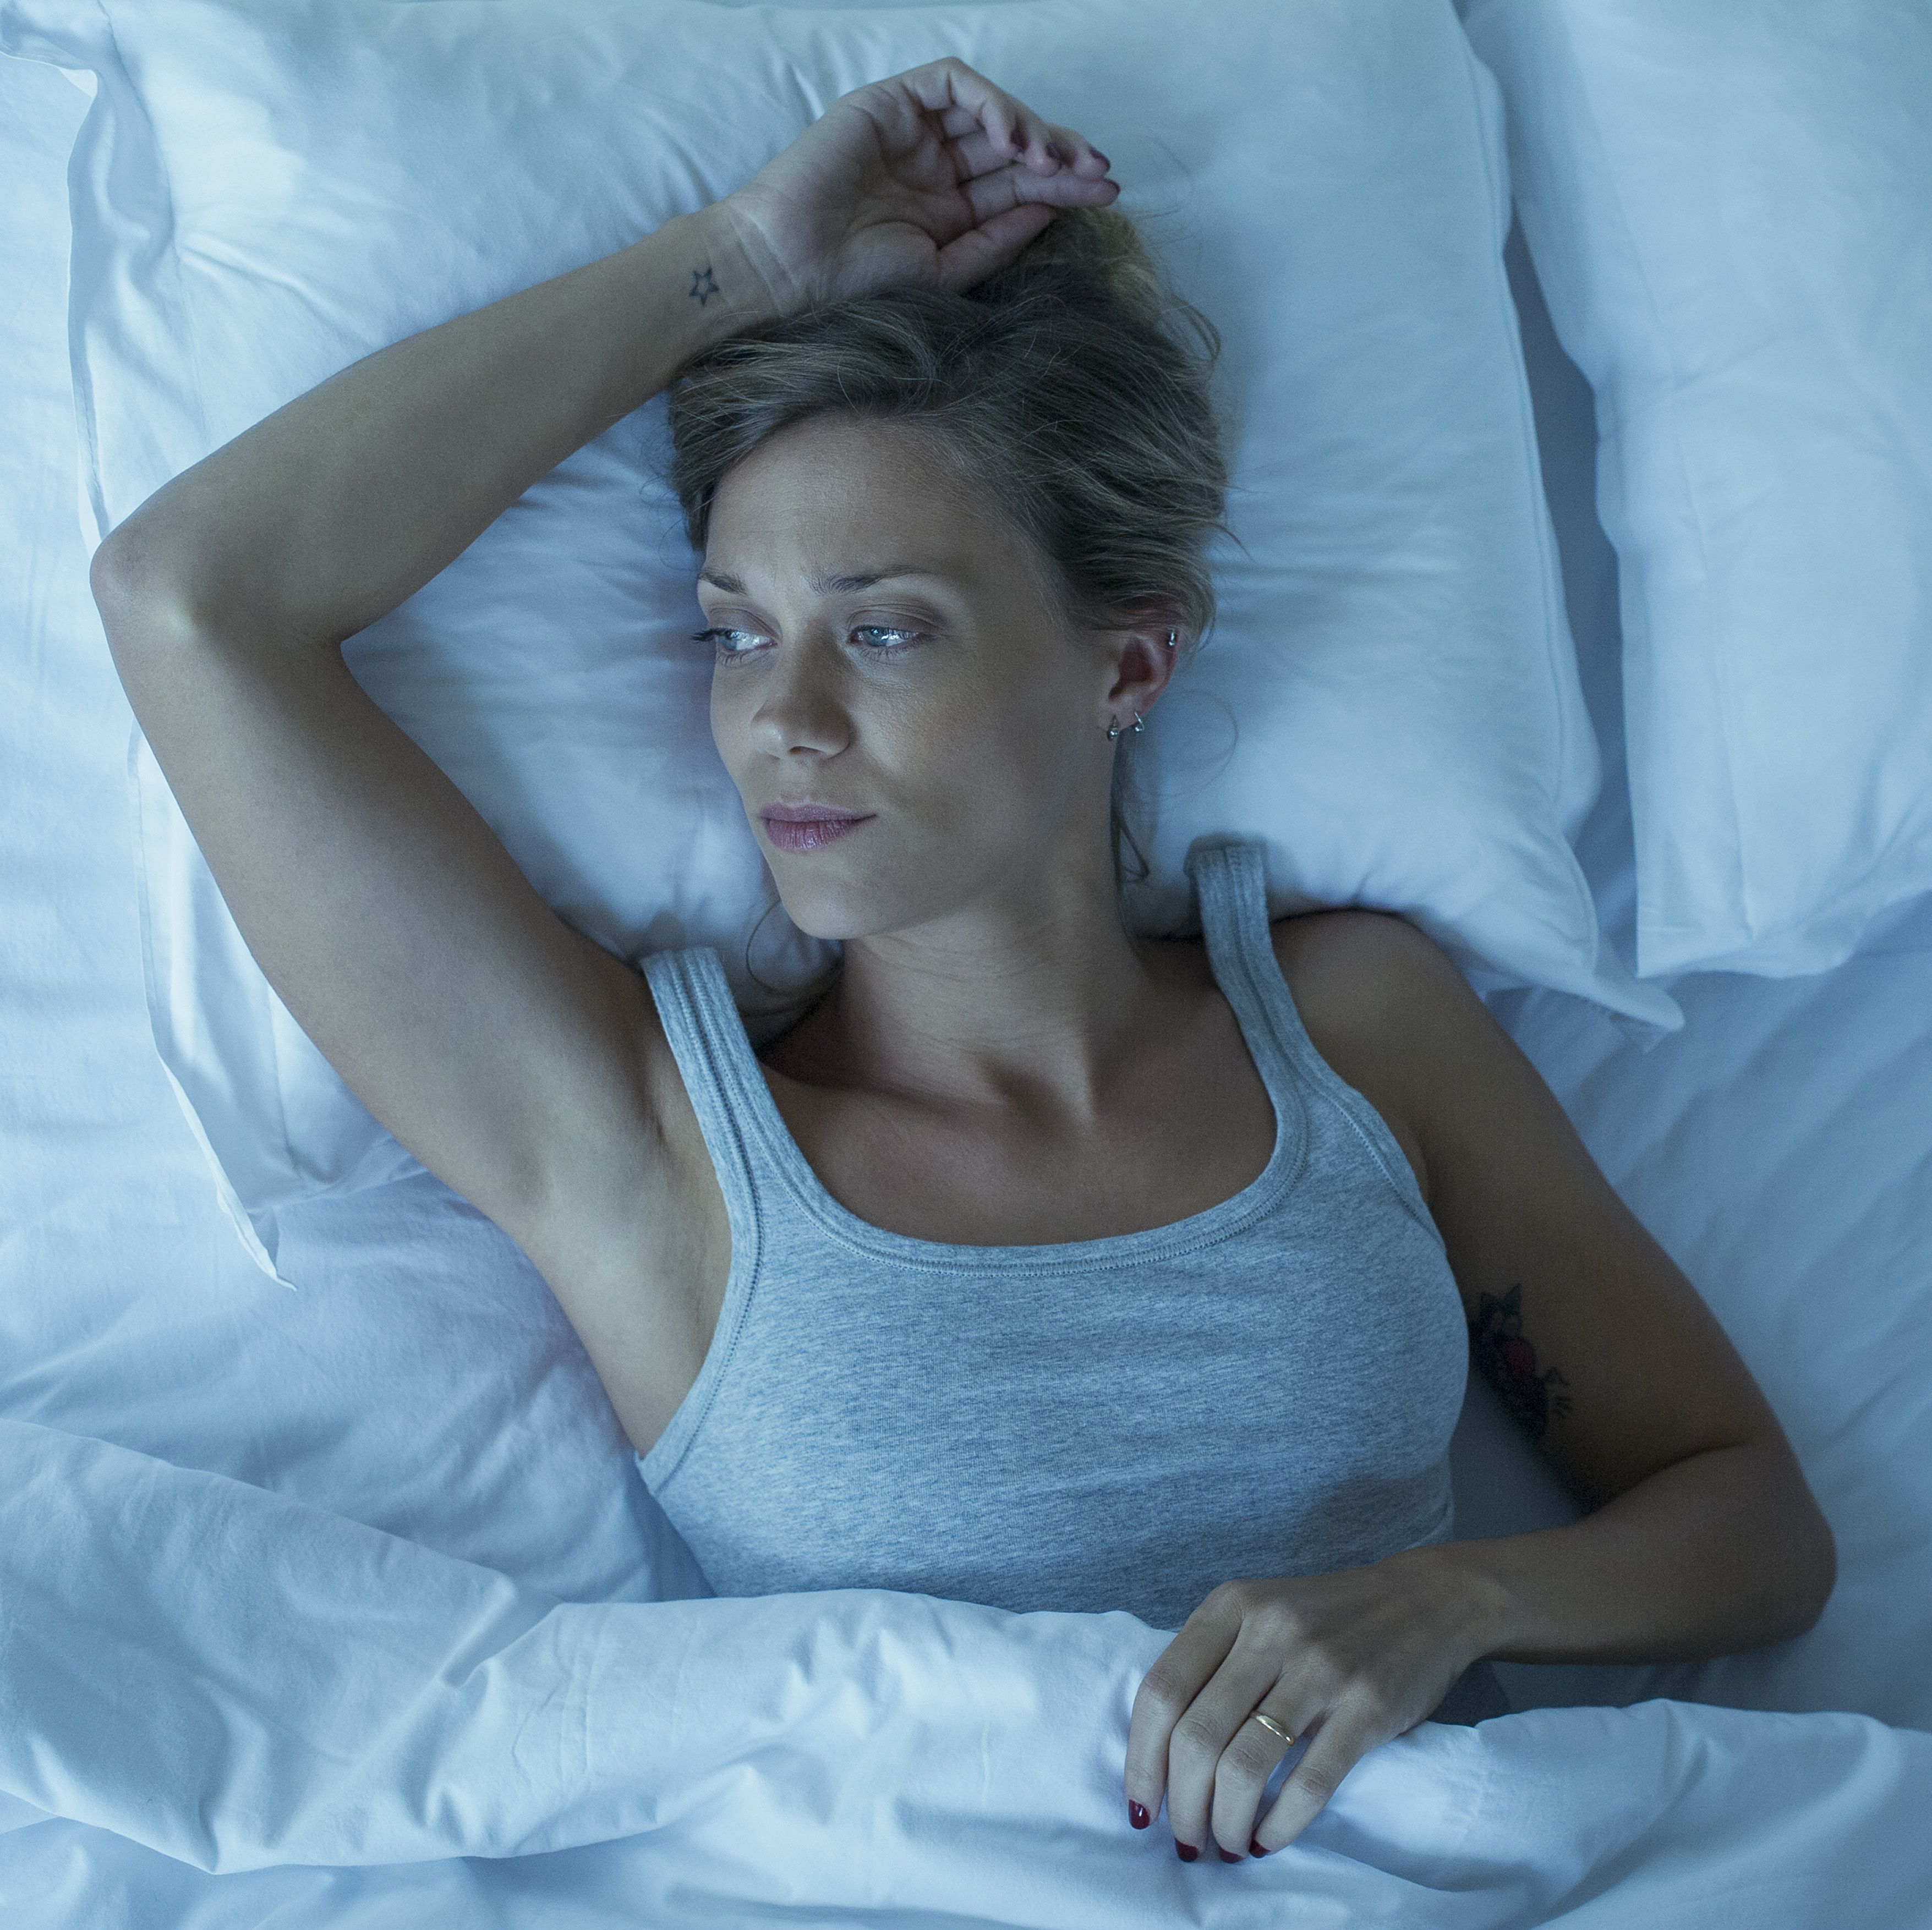 Woman lying alone in bed, looking away in thought